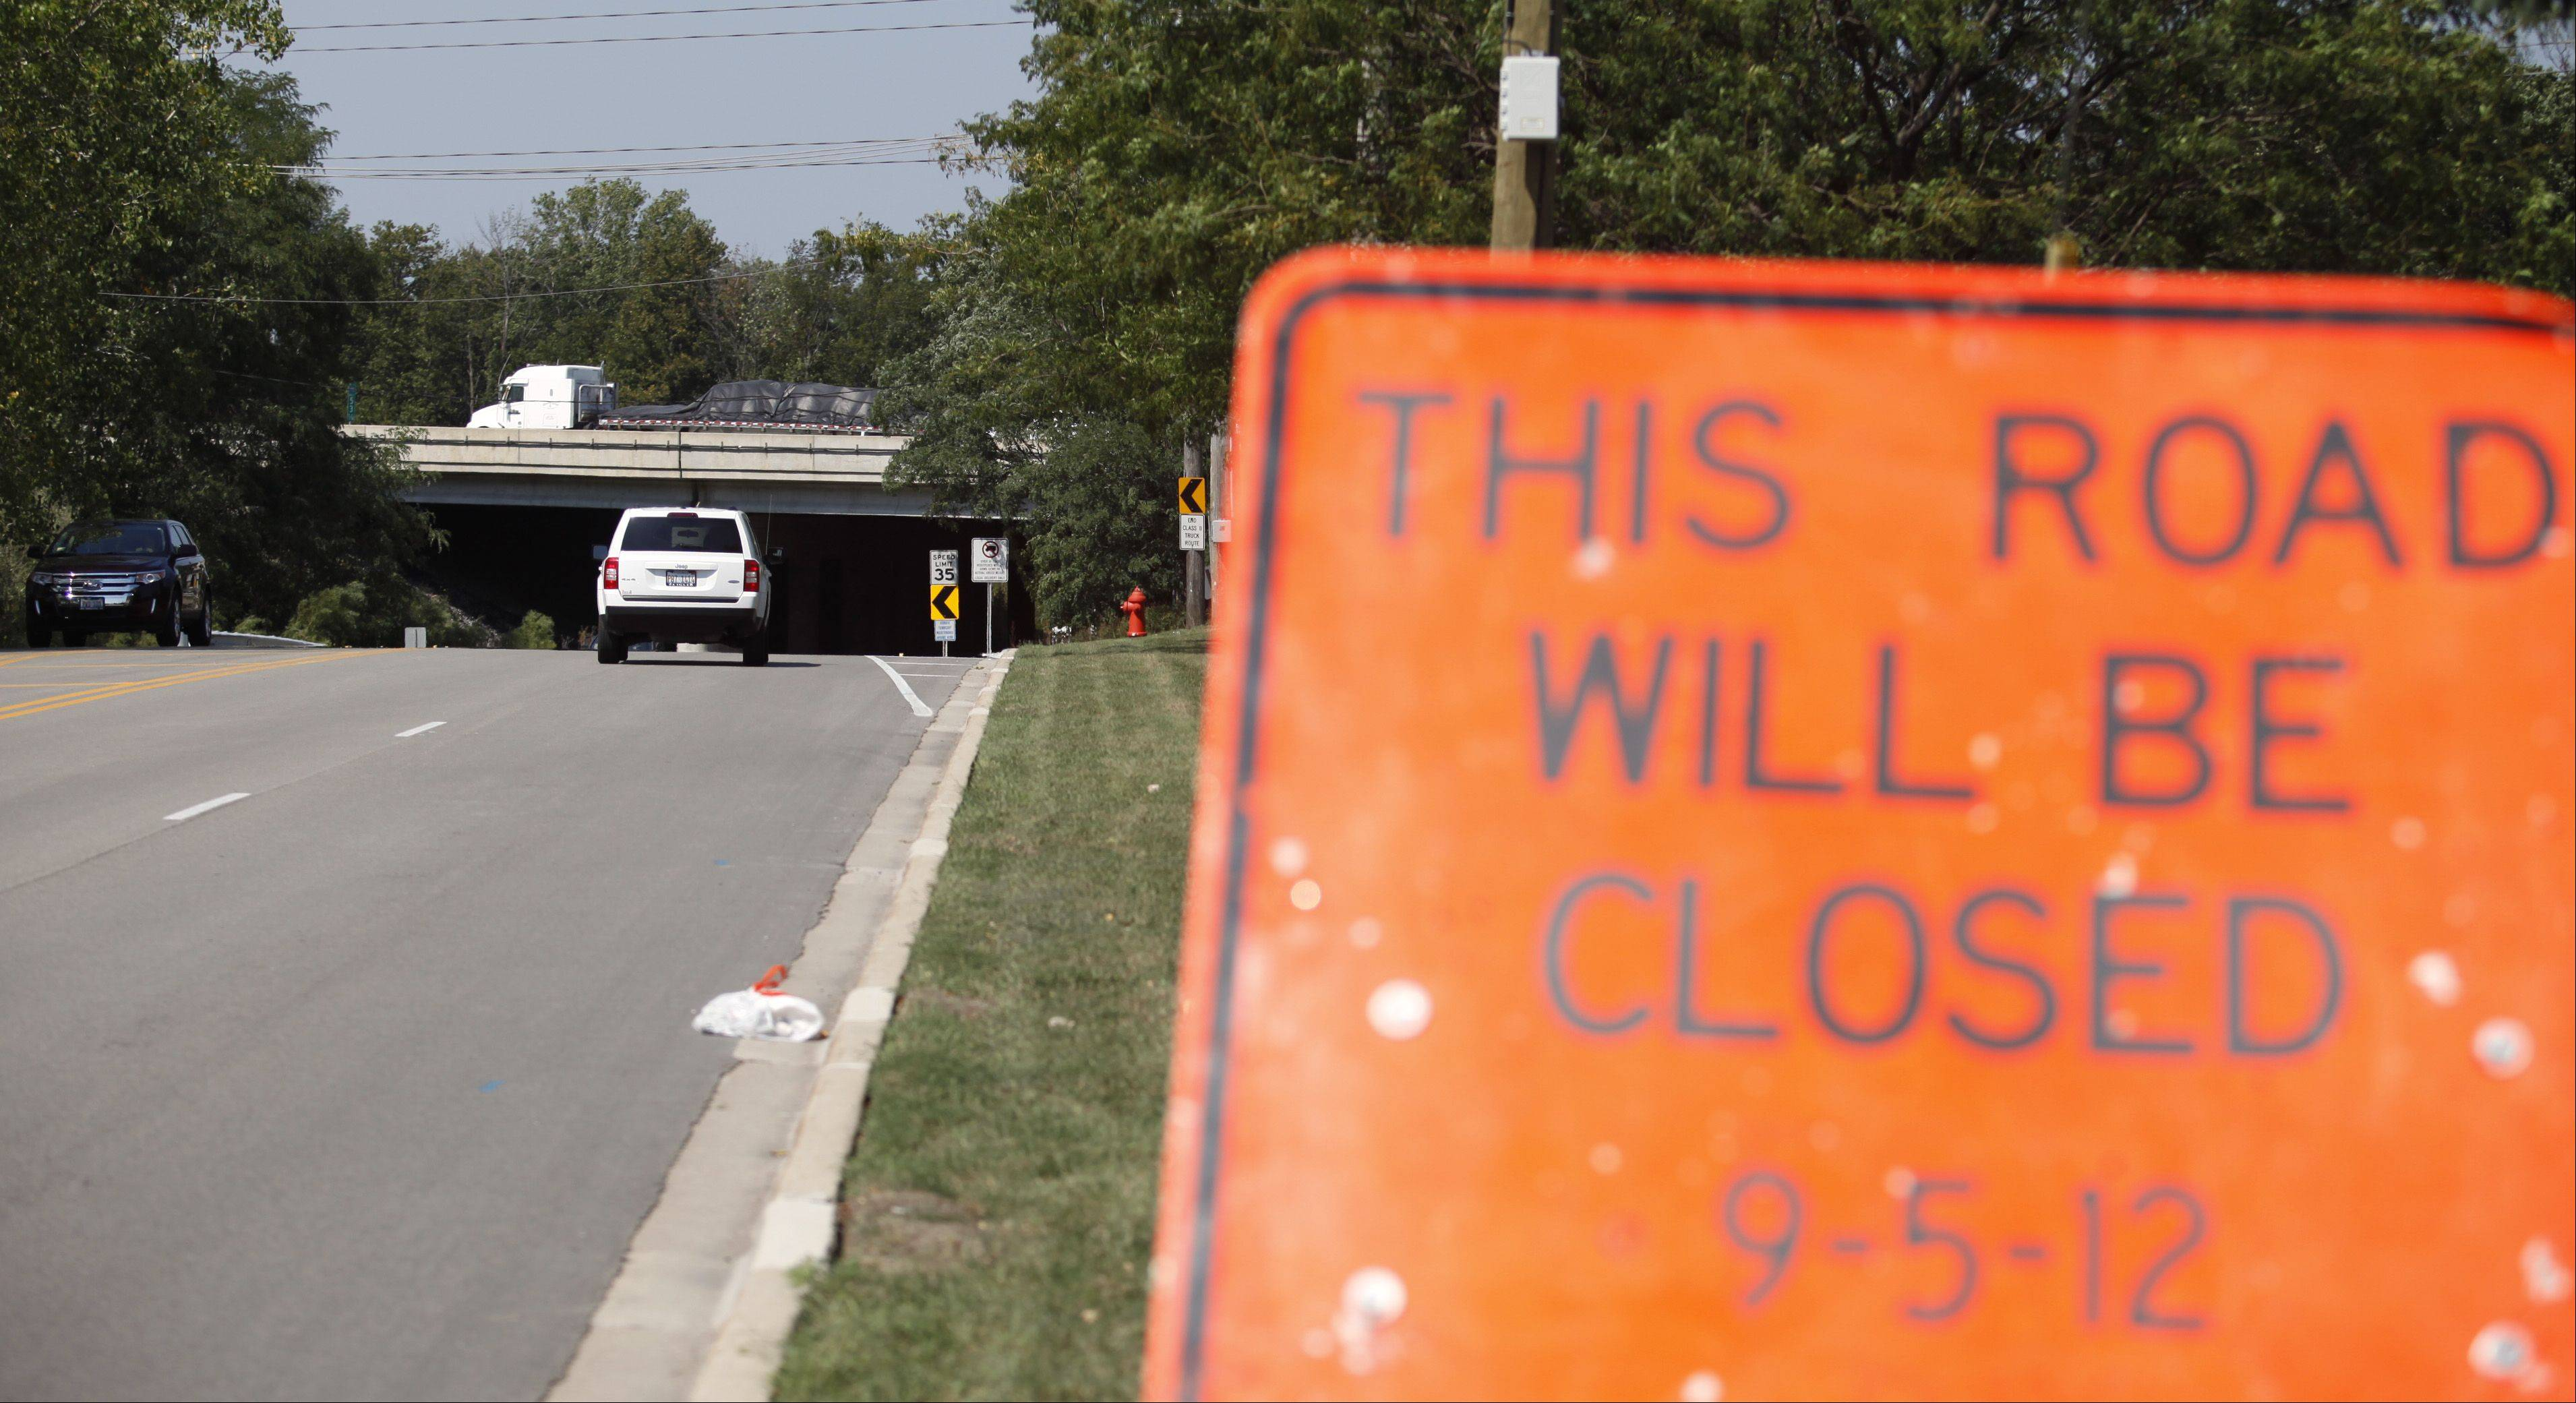 Construction is expected to begin next week on the Jane Addams Tollway bridge over Sleepy Hollow Road between Elgin and Sleepy Hollow. The roadway will be closed for a week, and up top, motorists on the tollway will be squeezed into two lanes.